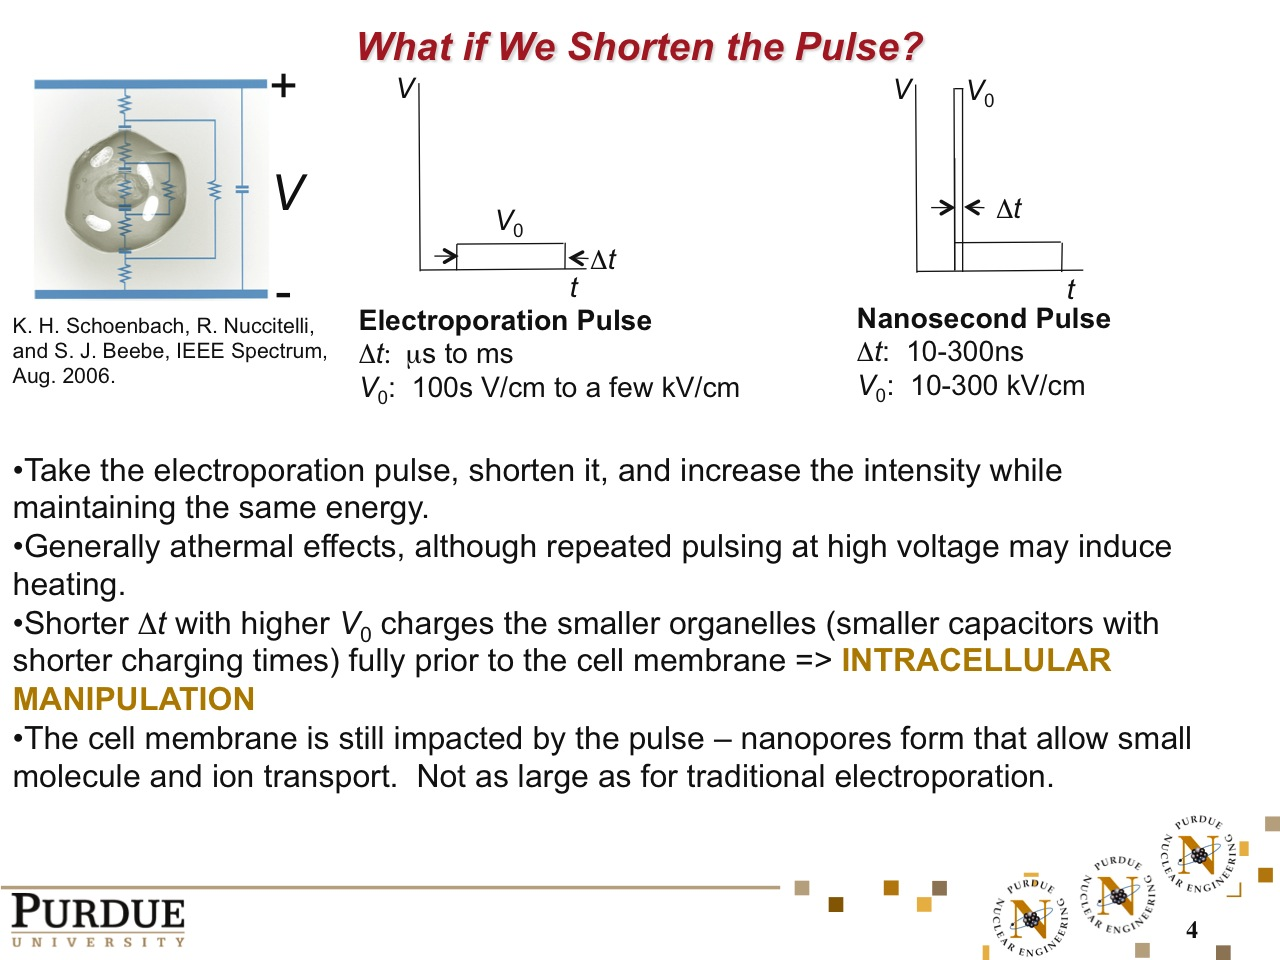 What if We Shorten the Pulse?